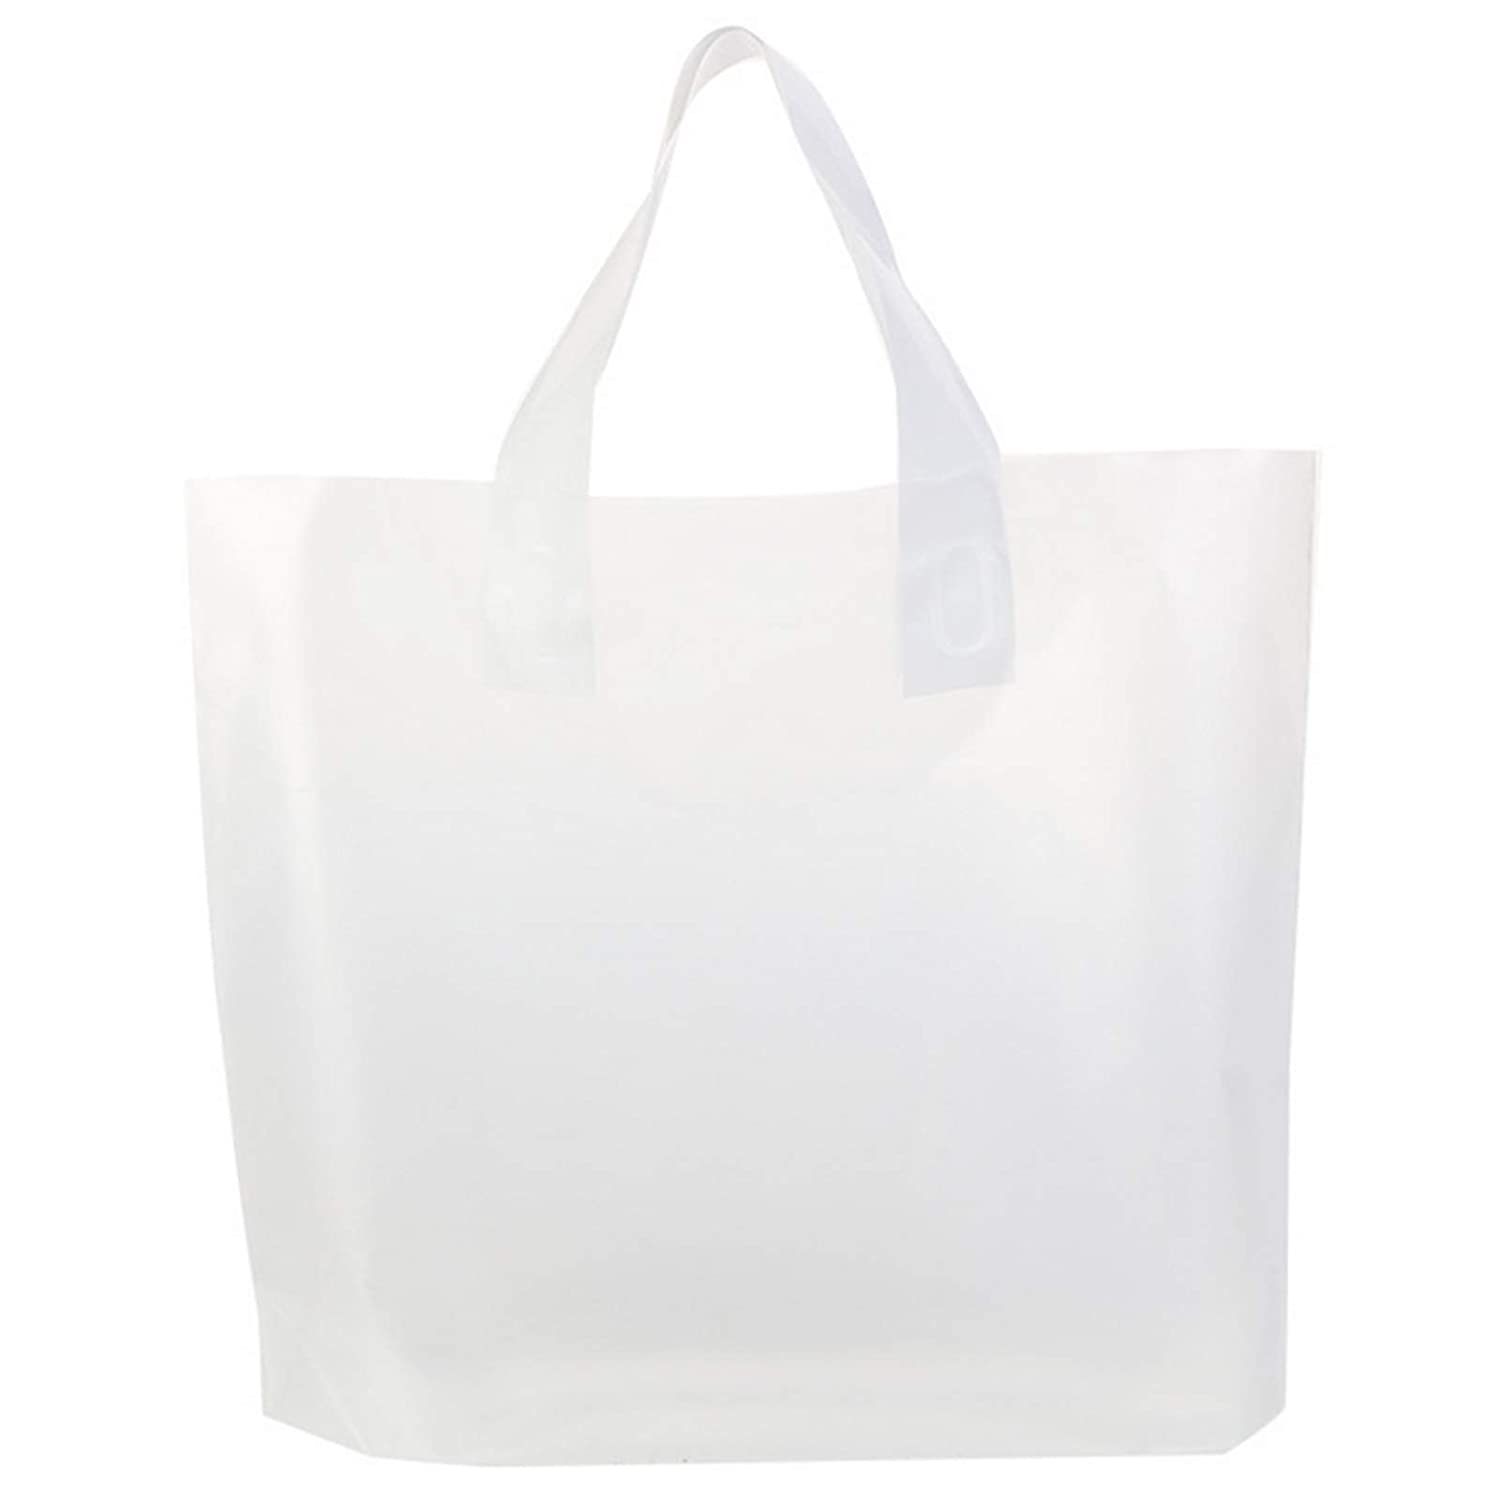 Gogmooi Clear Bags 100 Pcs Plastic Bags with Handles Bulk, Frosted Large Plastic Bags Soft for Shopping Bags, Gift Bags, Take Out Bags, High-Density Big Size 16